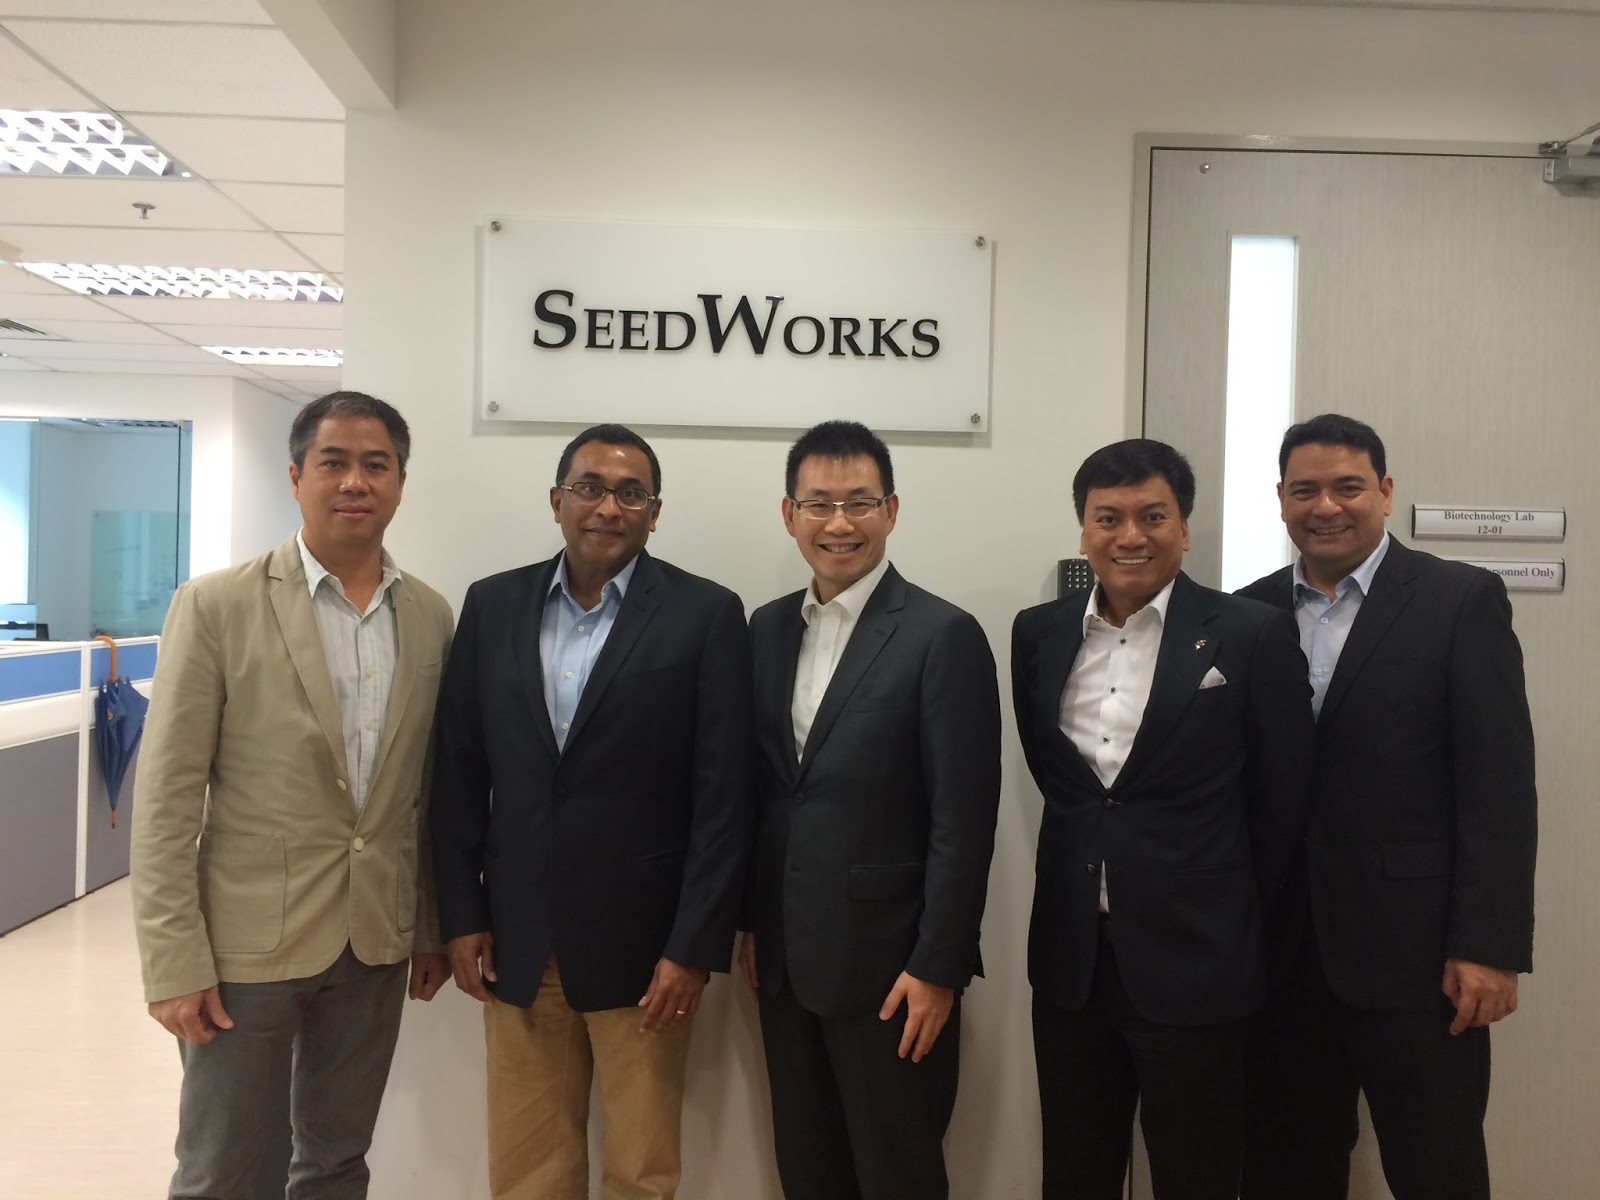 Jardine Inks Five Year Deal With Seedworks For New Hybrid Rice Seeds Andrew Smith Regular 5 Pockets Hitam 34 Taking Part In The Philippines Bid To Strengthen Its Sufficiency Distribution Inc Jdi Inked A Distributorship Agreement